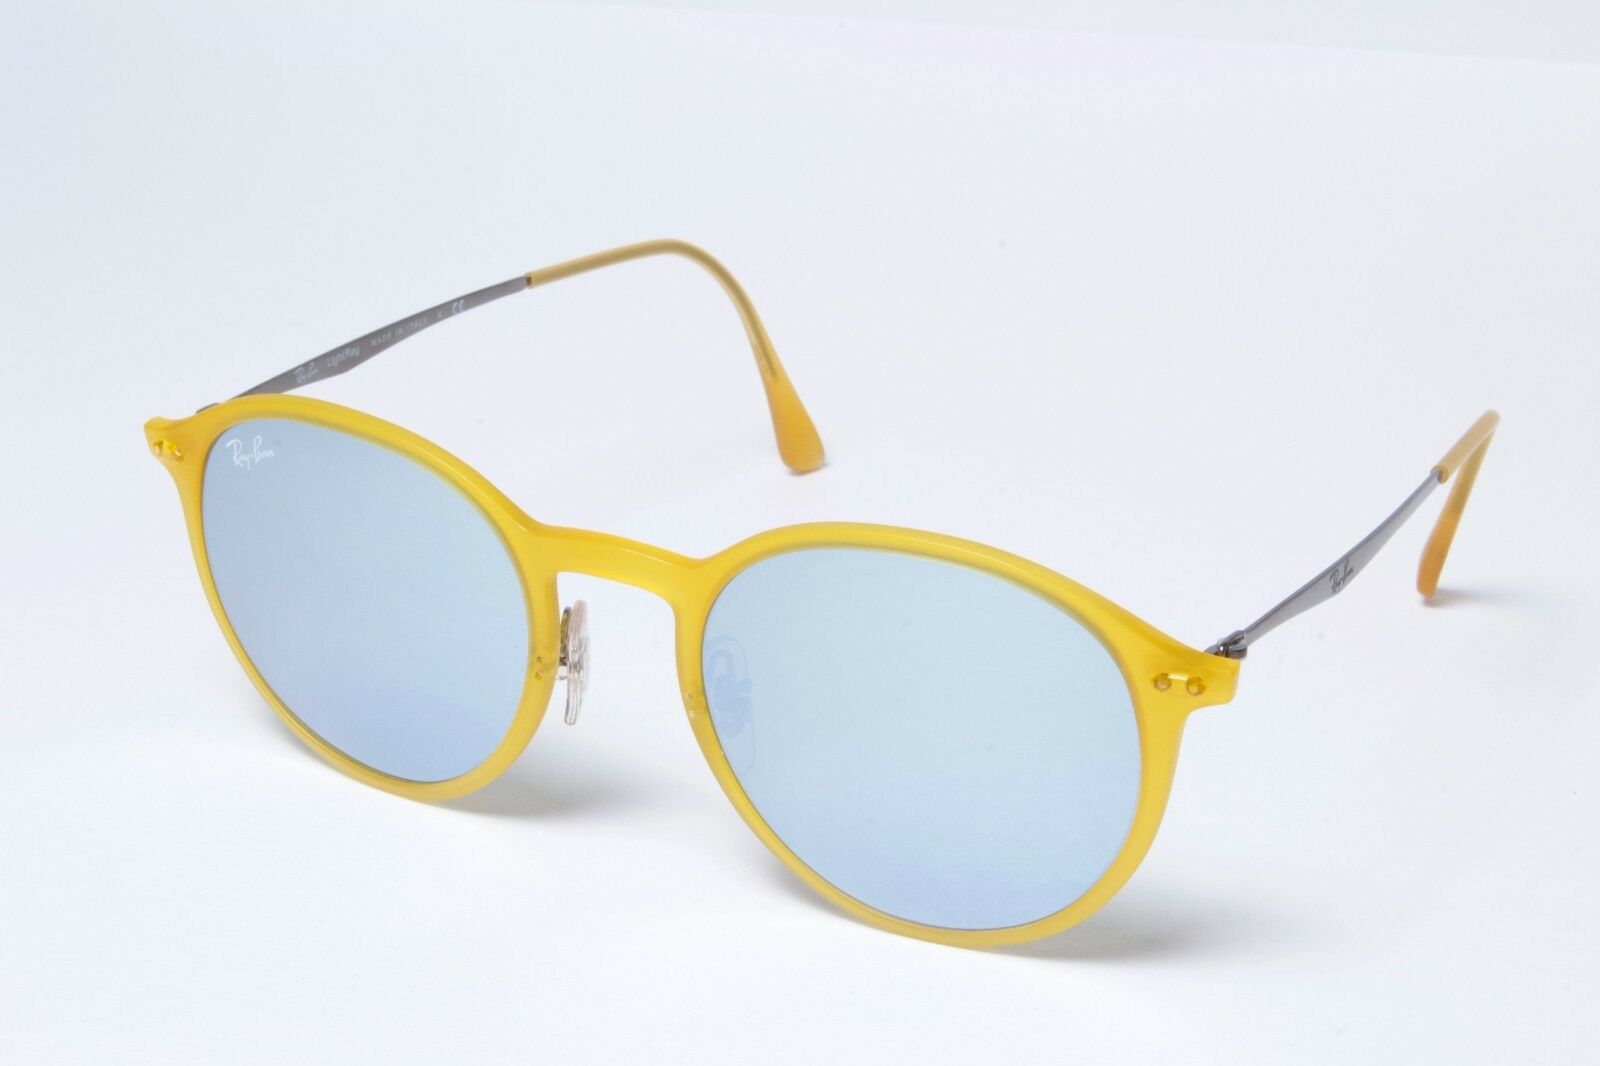 23611275038f3 Ray-Ban Rb4224 618630 Sunglasses Yellow Frame Silver Mirrored Lenses ...